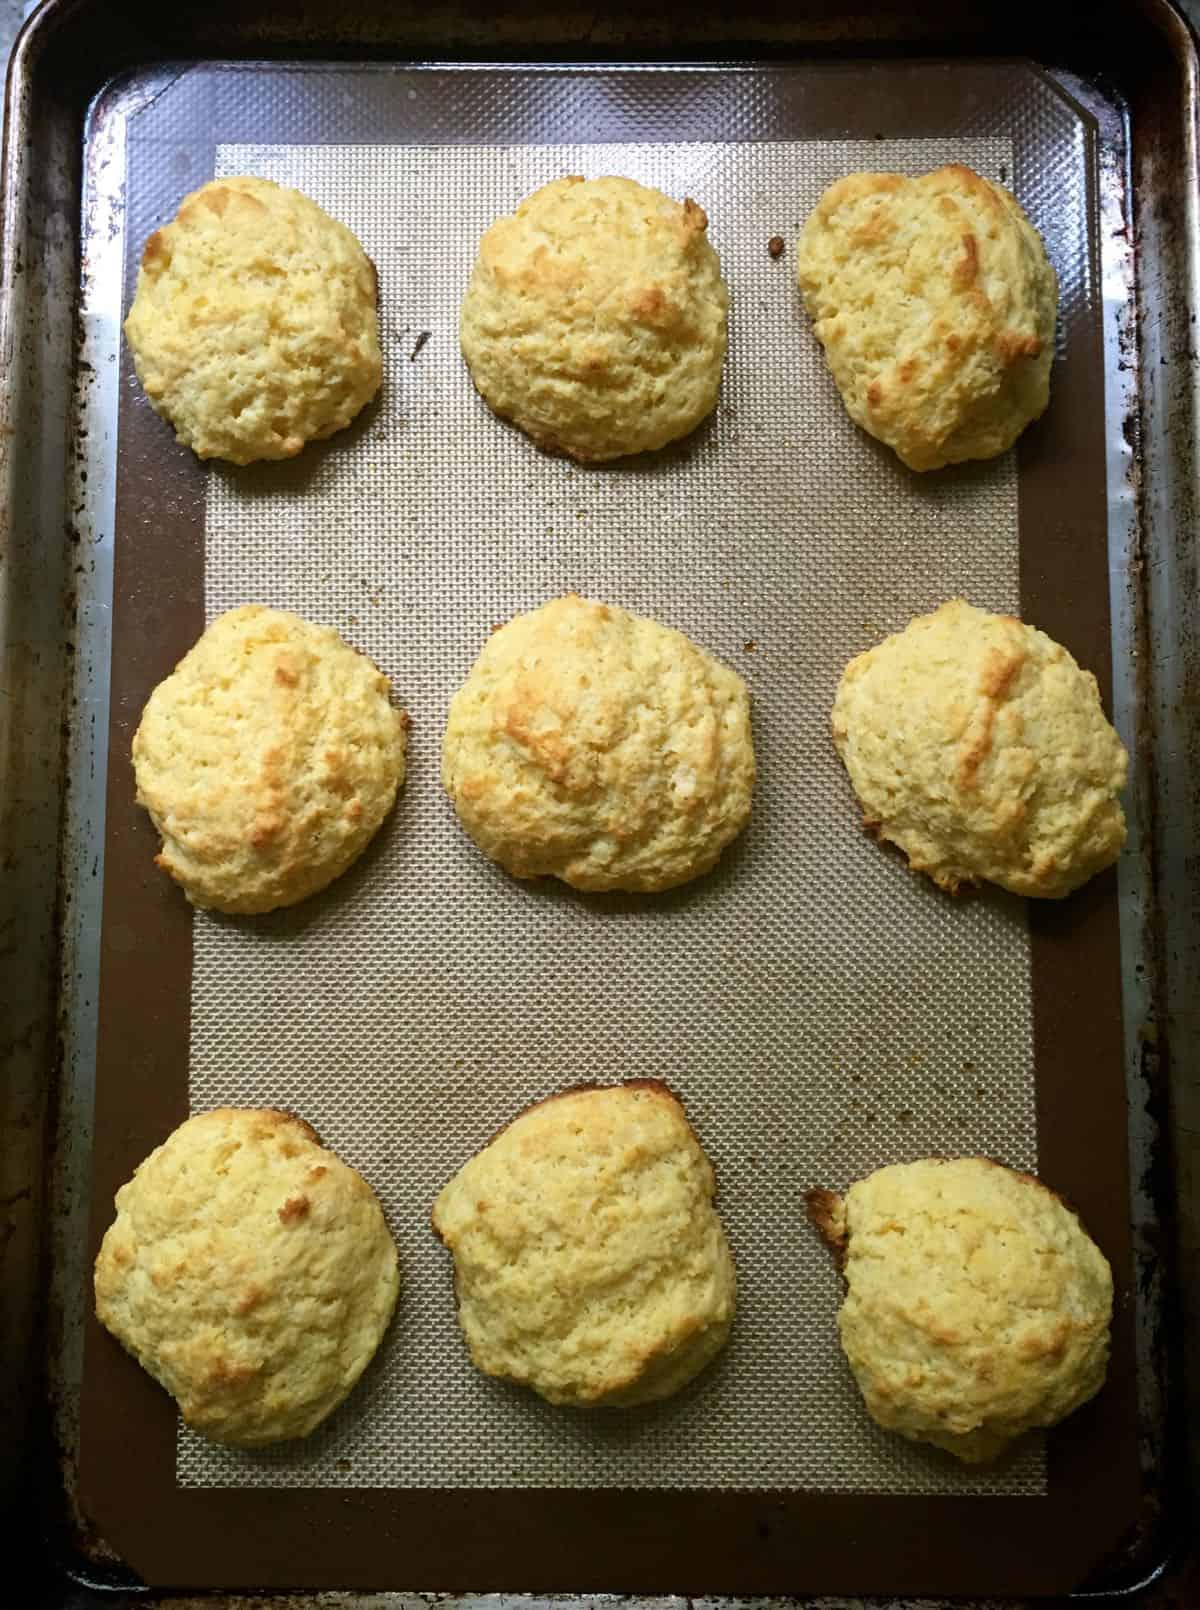 Baked cornmeal drop shortcake biscuits.